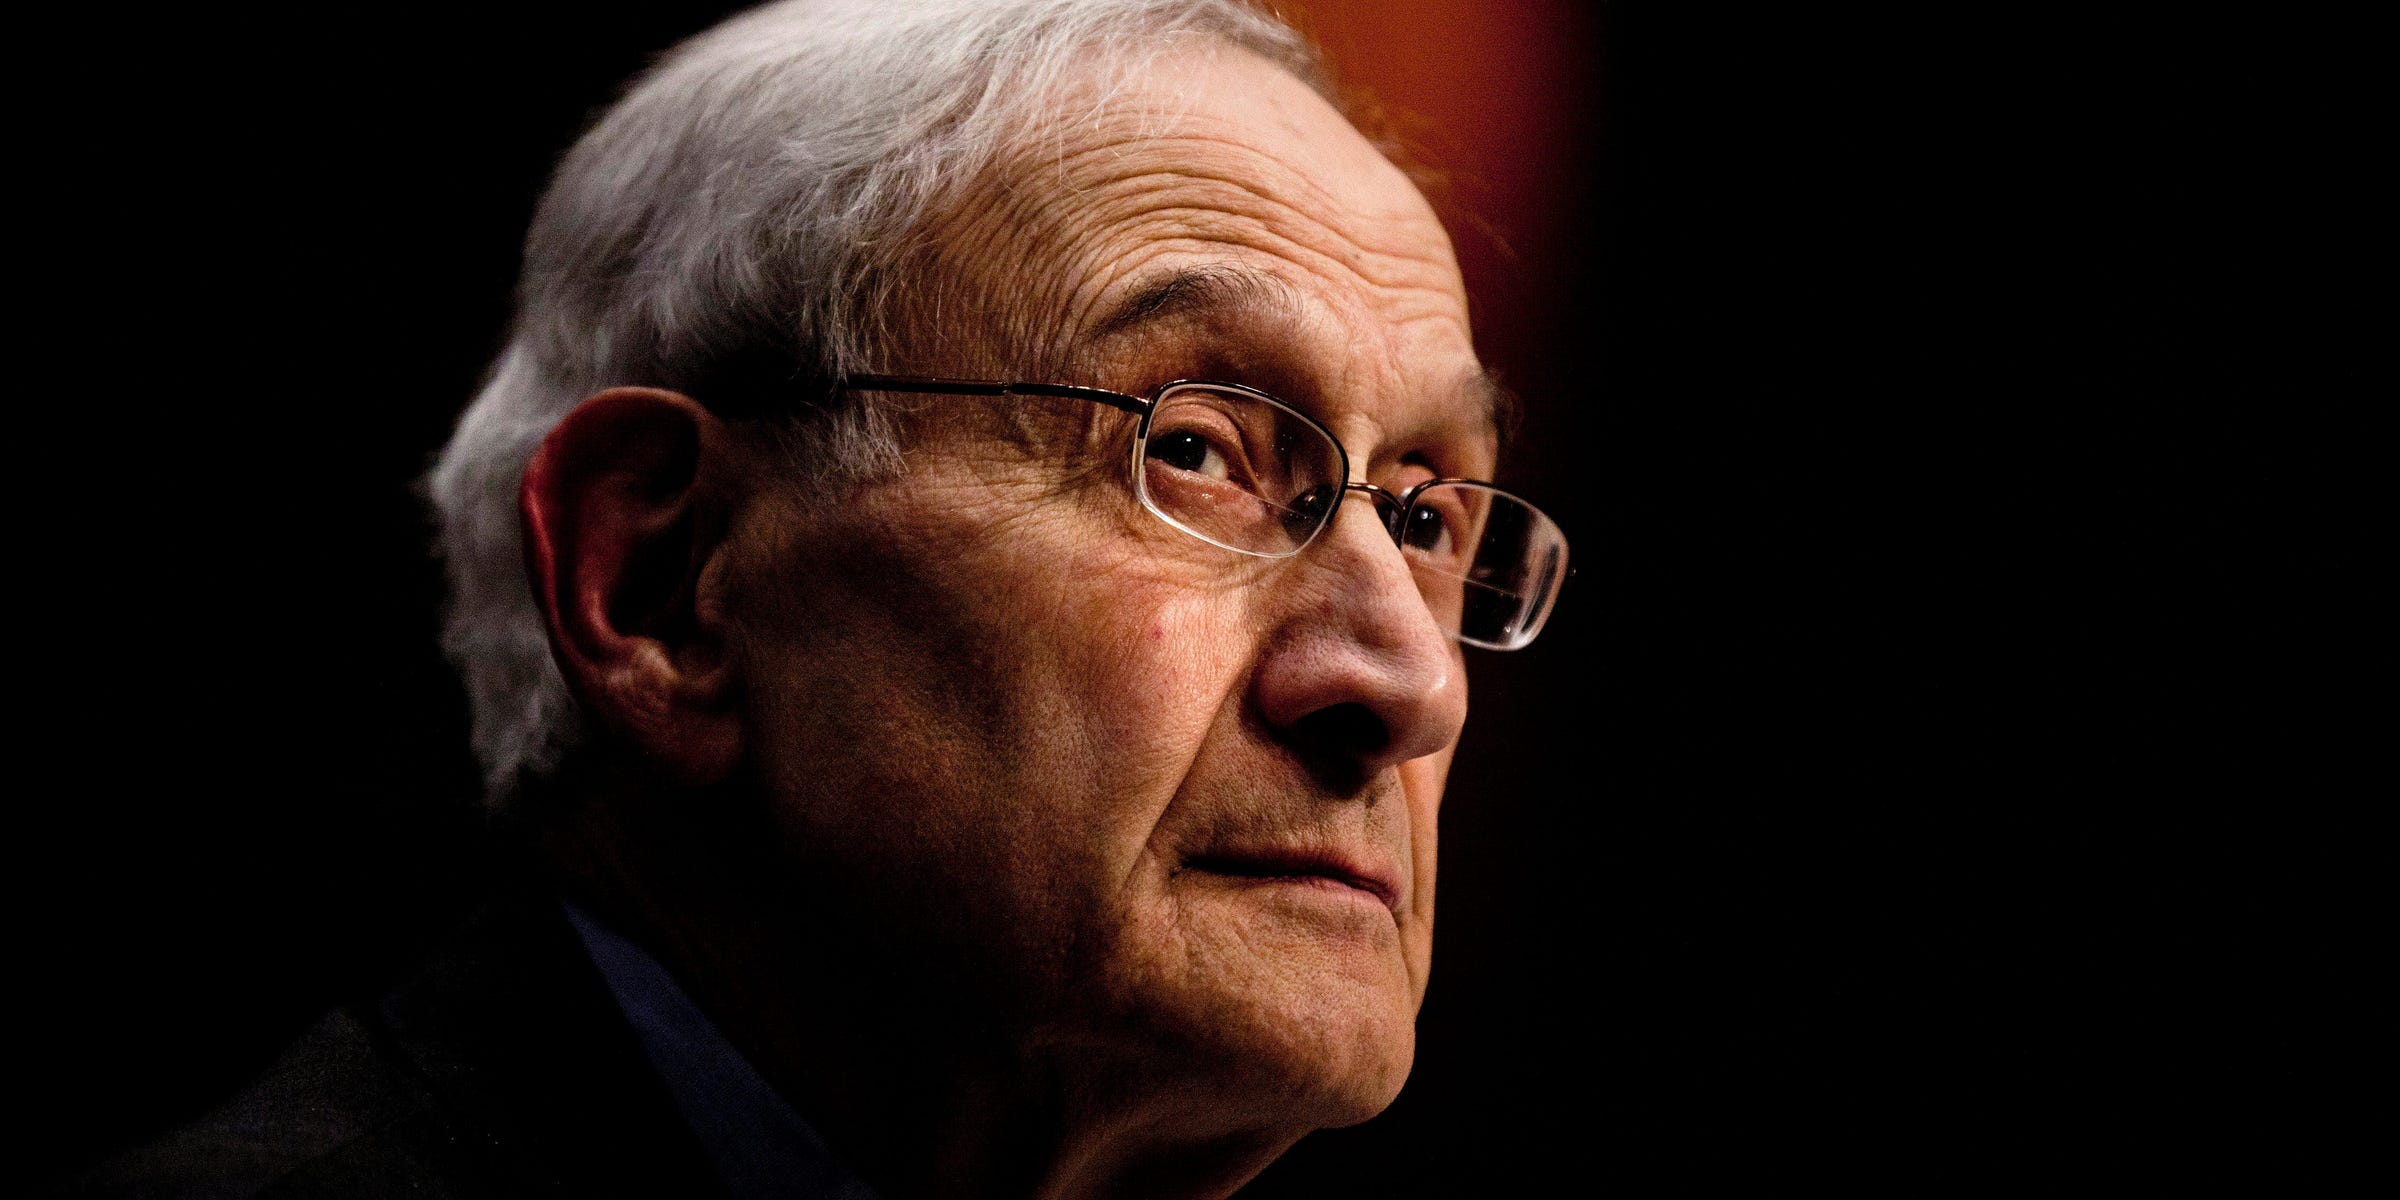 WASHINGTON - FEBRUARY 2: Charles Fried, professor of law at Harvard Law School, listens during a hearing of the Senate Judiciary Committee on Capitol Hill February 2, 2011 in Washington, DC. The committee held the hearing to discuss the constitutionality of the Affordable Care Act, which was passed last year to reform healthcare and was a major issue during the 2010 midterm elections. (Photo by Brendan Smialowski/Getty Images)